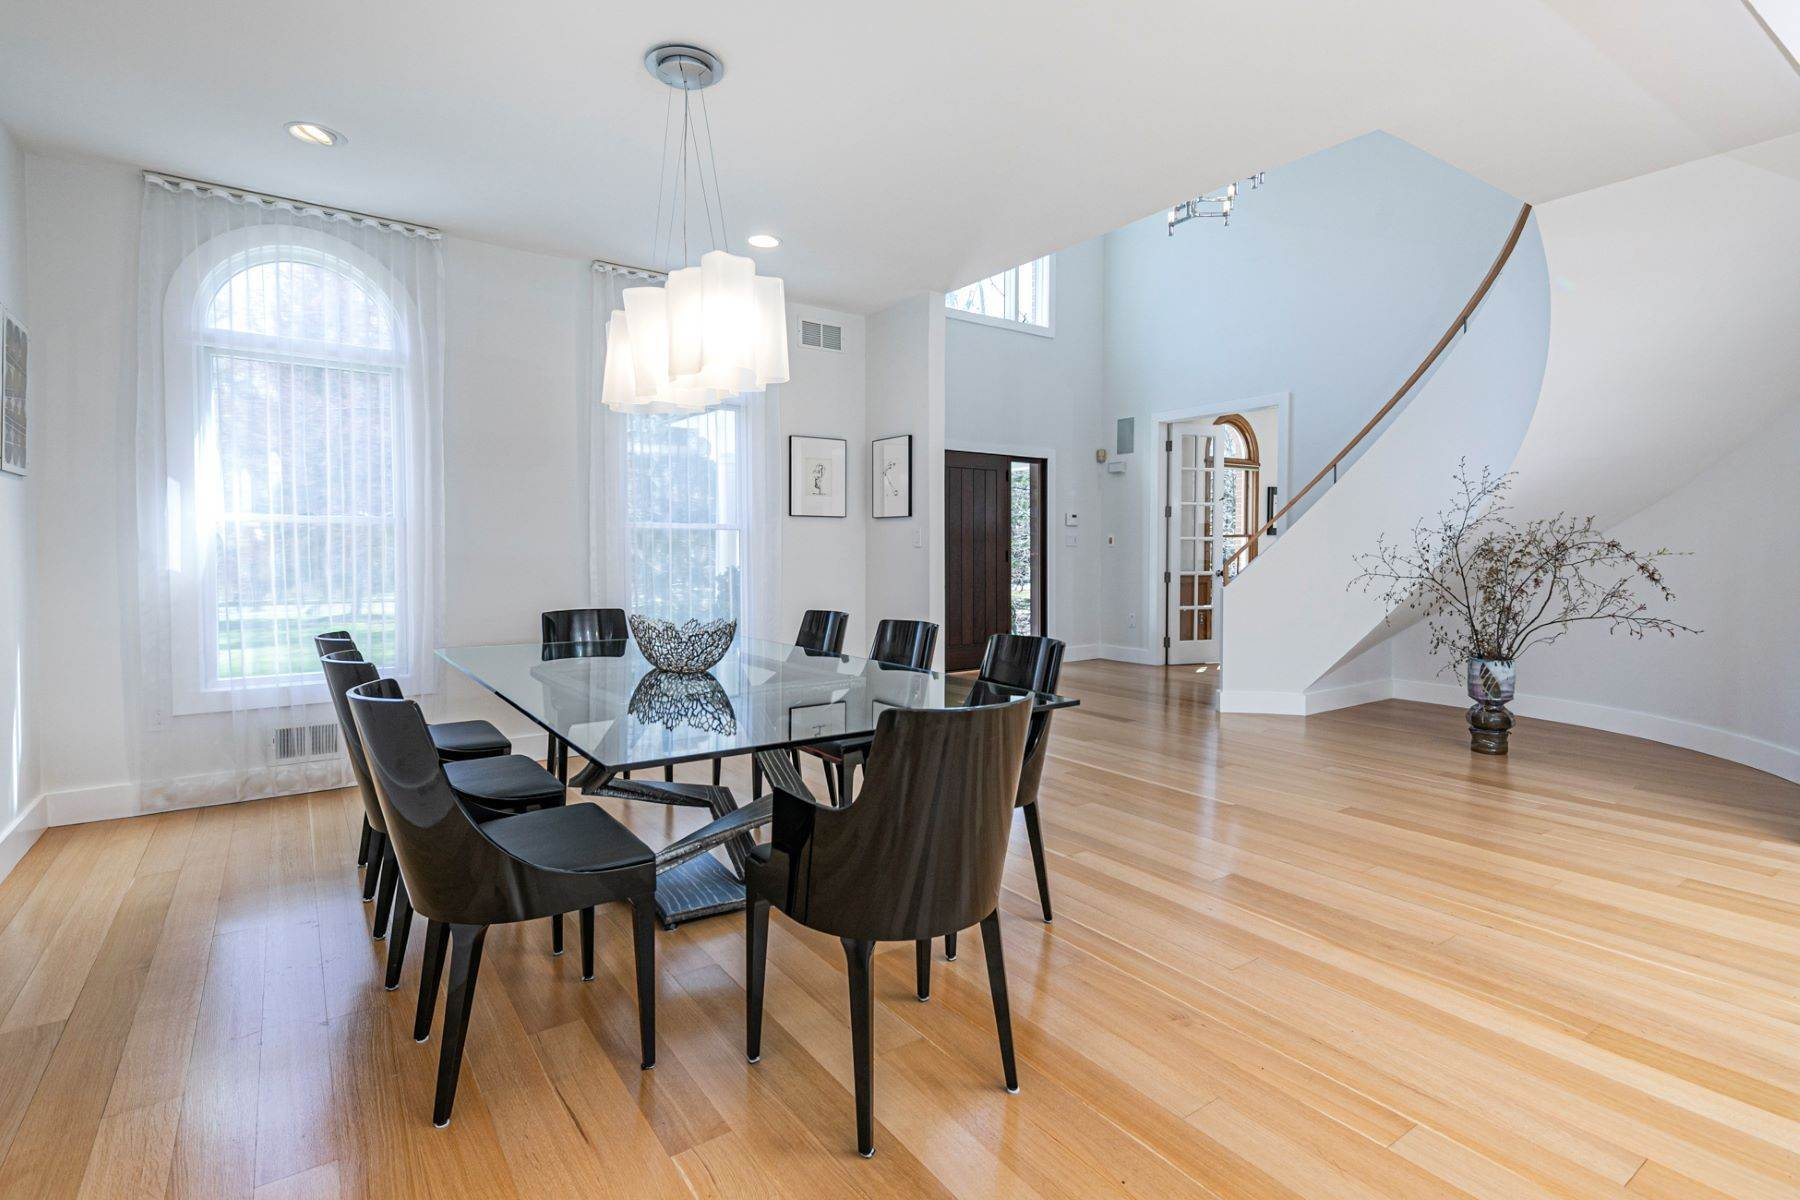 9. Single Family Homes για την Πώληση στο A Bold Renovation Results in Bright Modern Spaces 97 & 95 Penn Lyle Road, Princeton Junction, Νιου Τζερσεϋ 08550 Ηνωμένες Πολιτείες